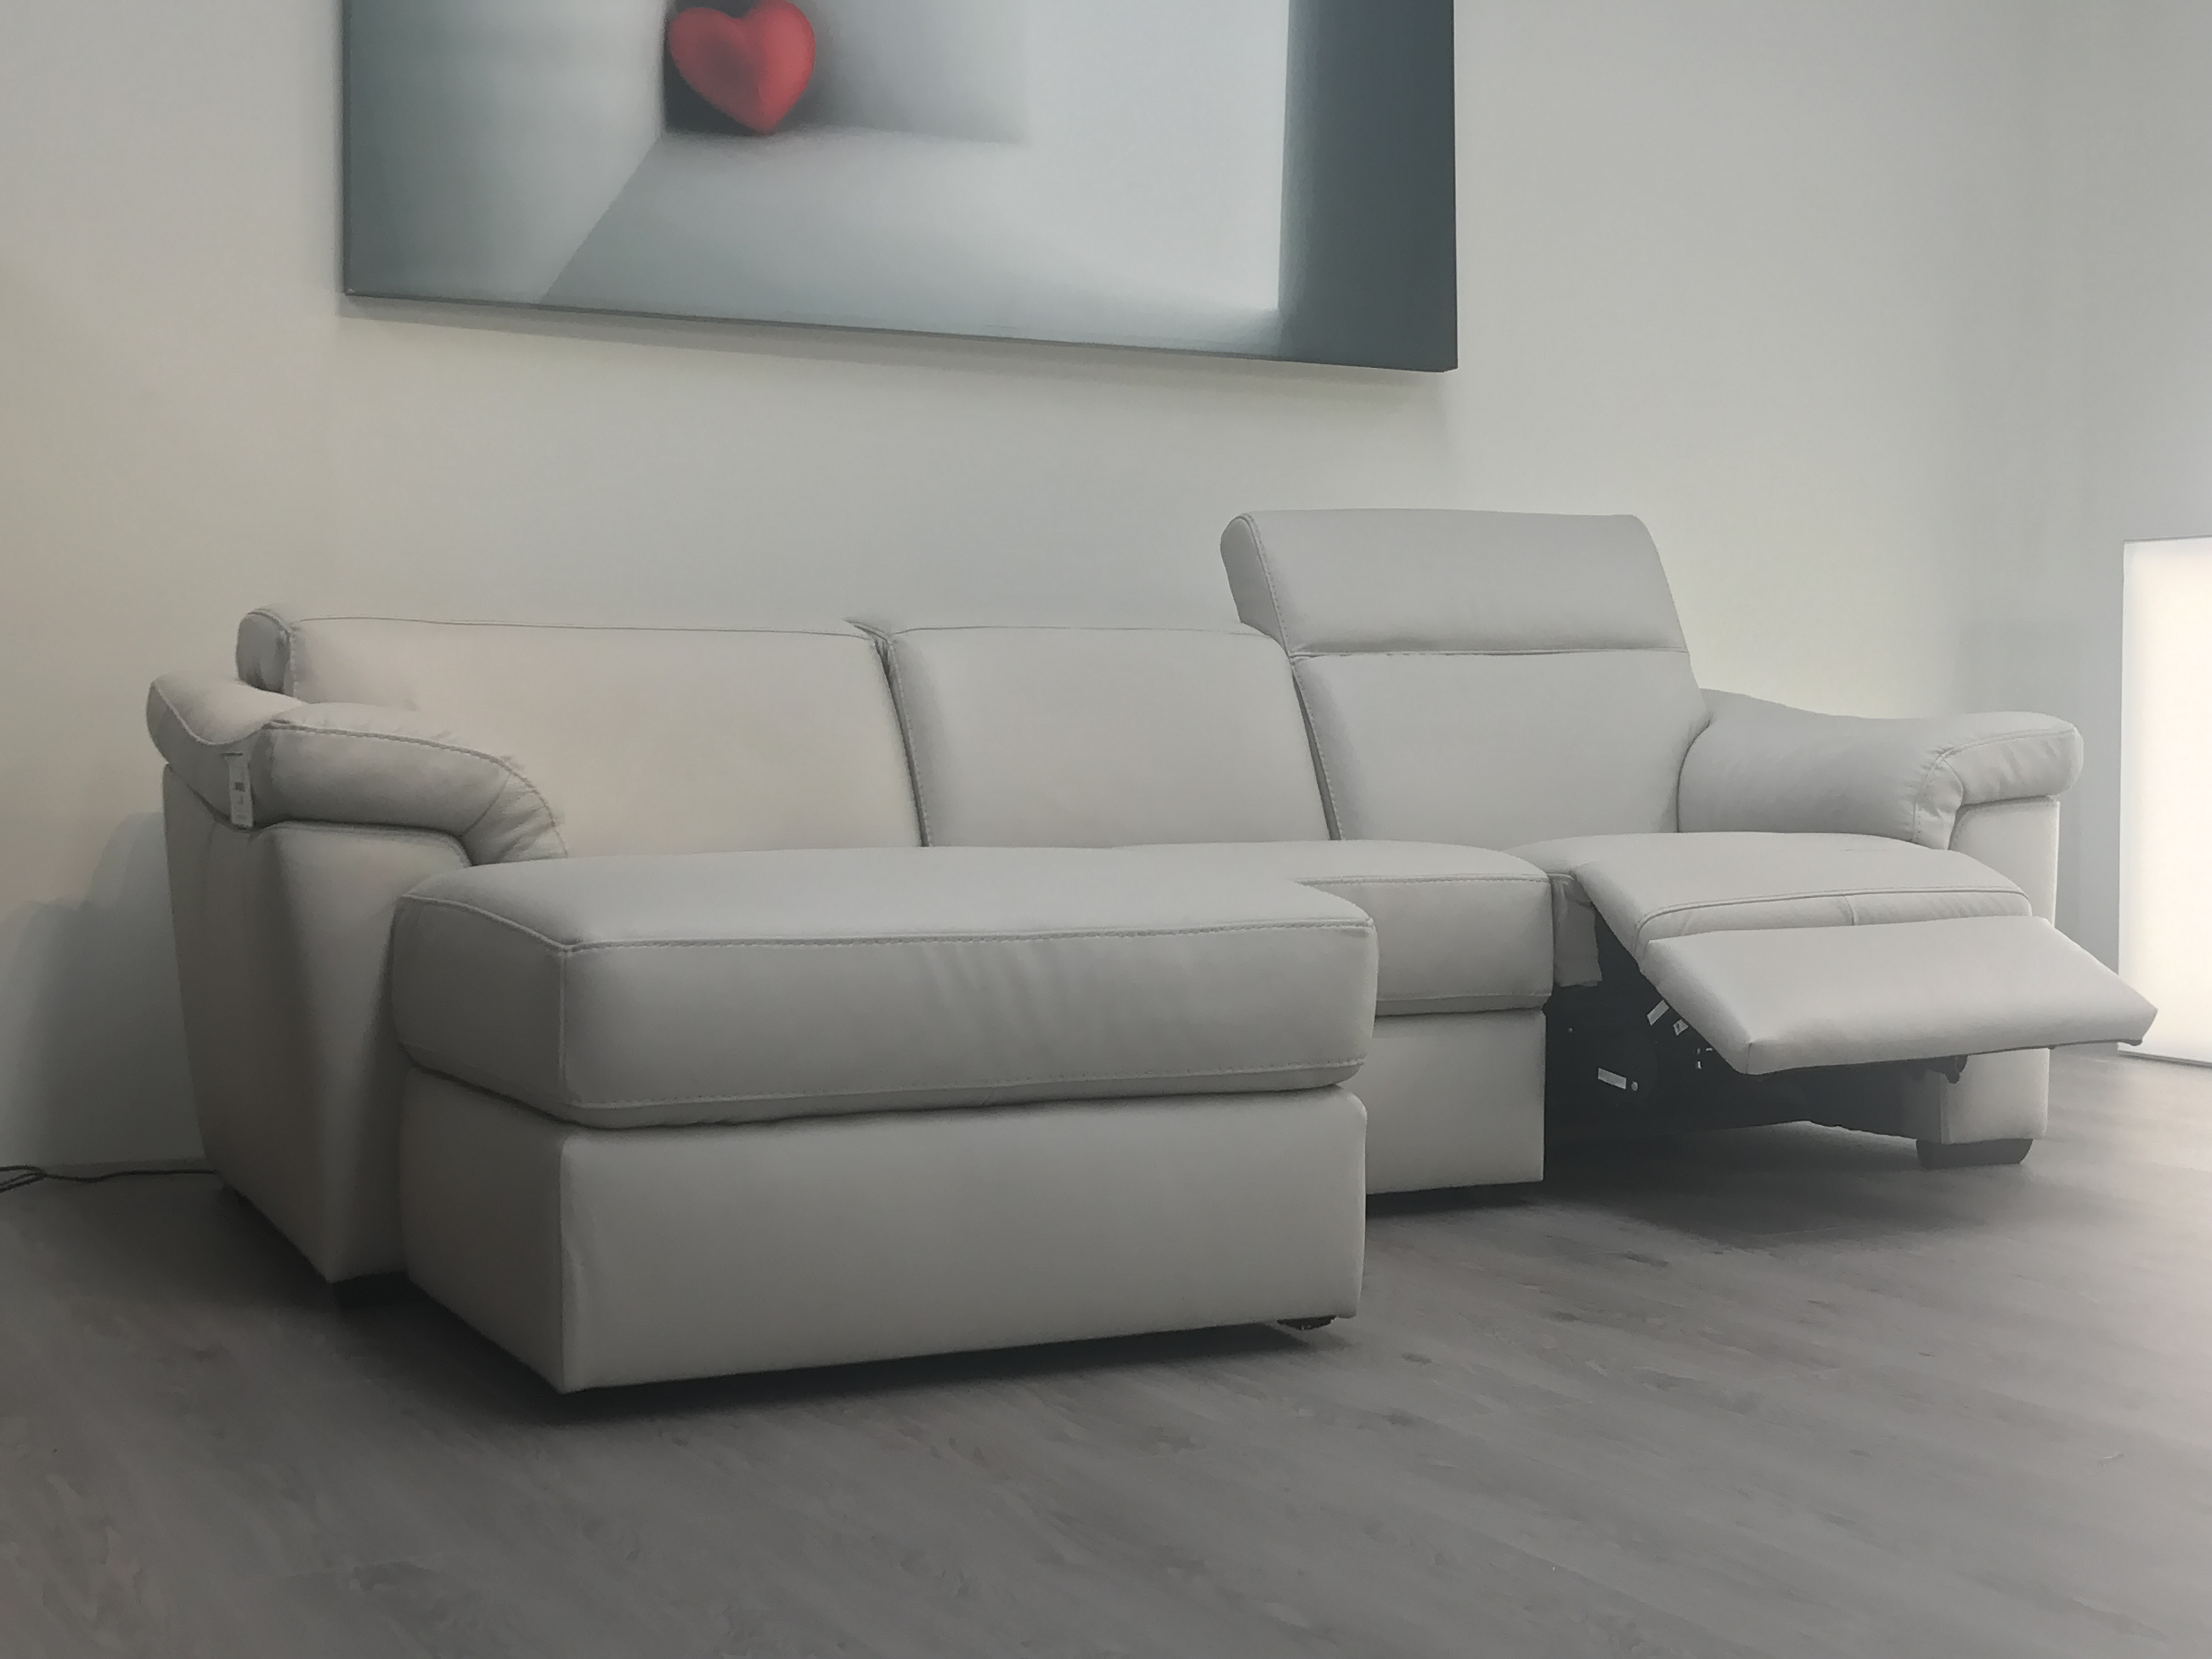 Sofas and Furniture by Natuzzi Editions